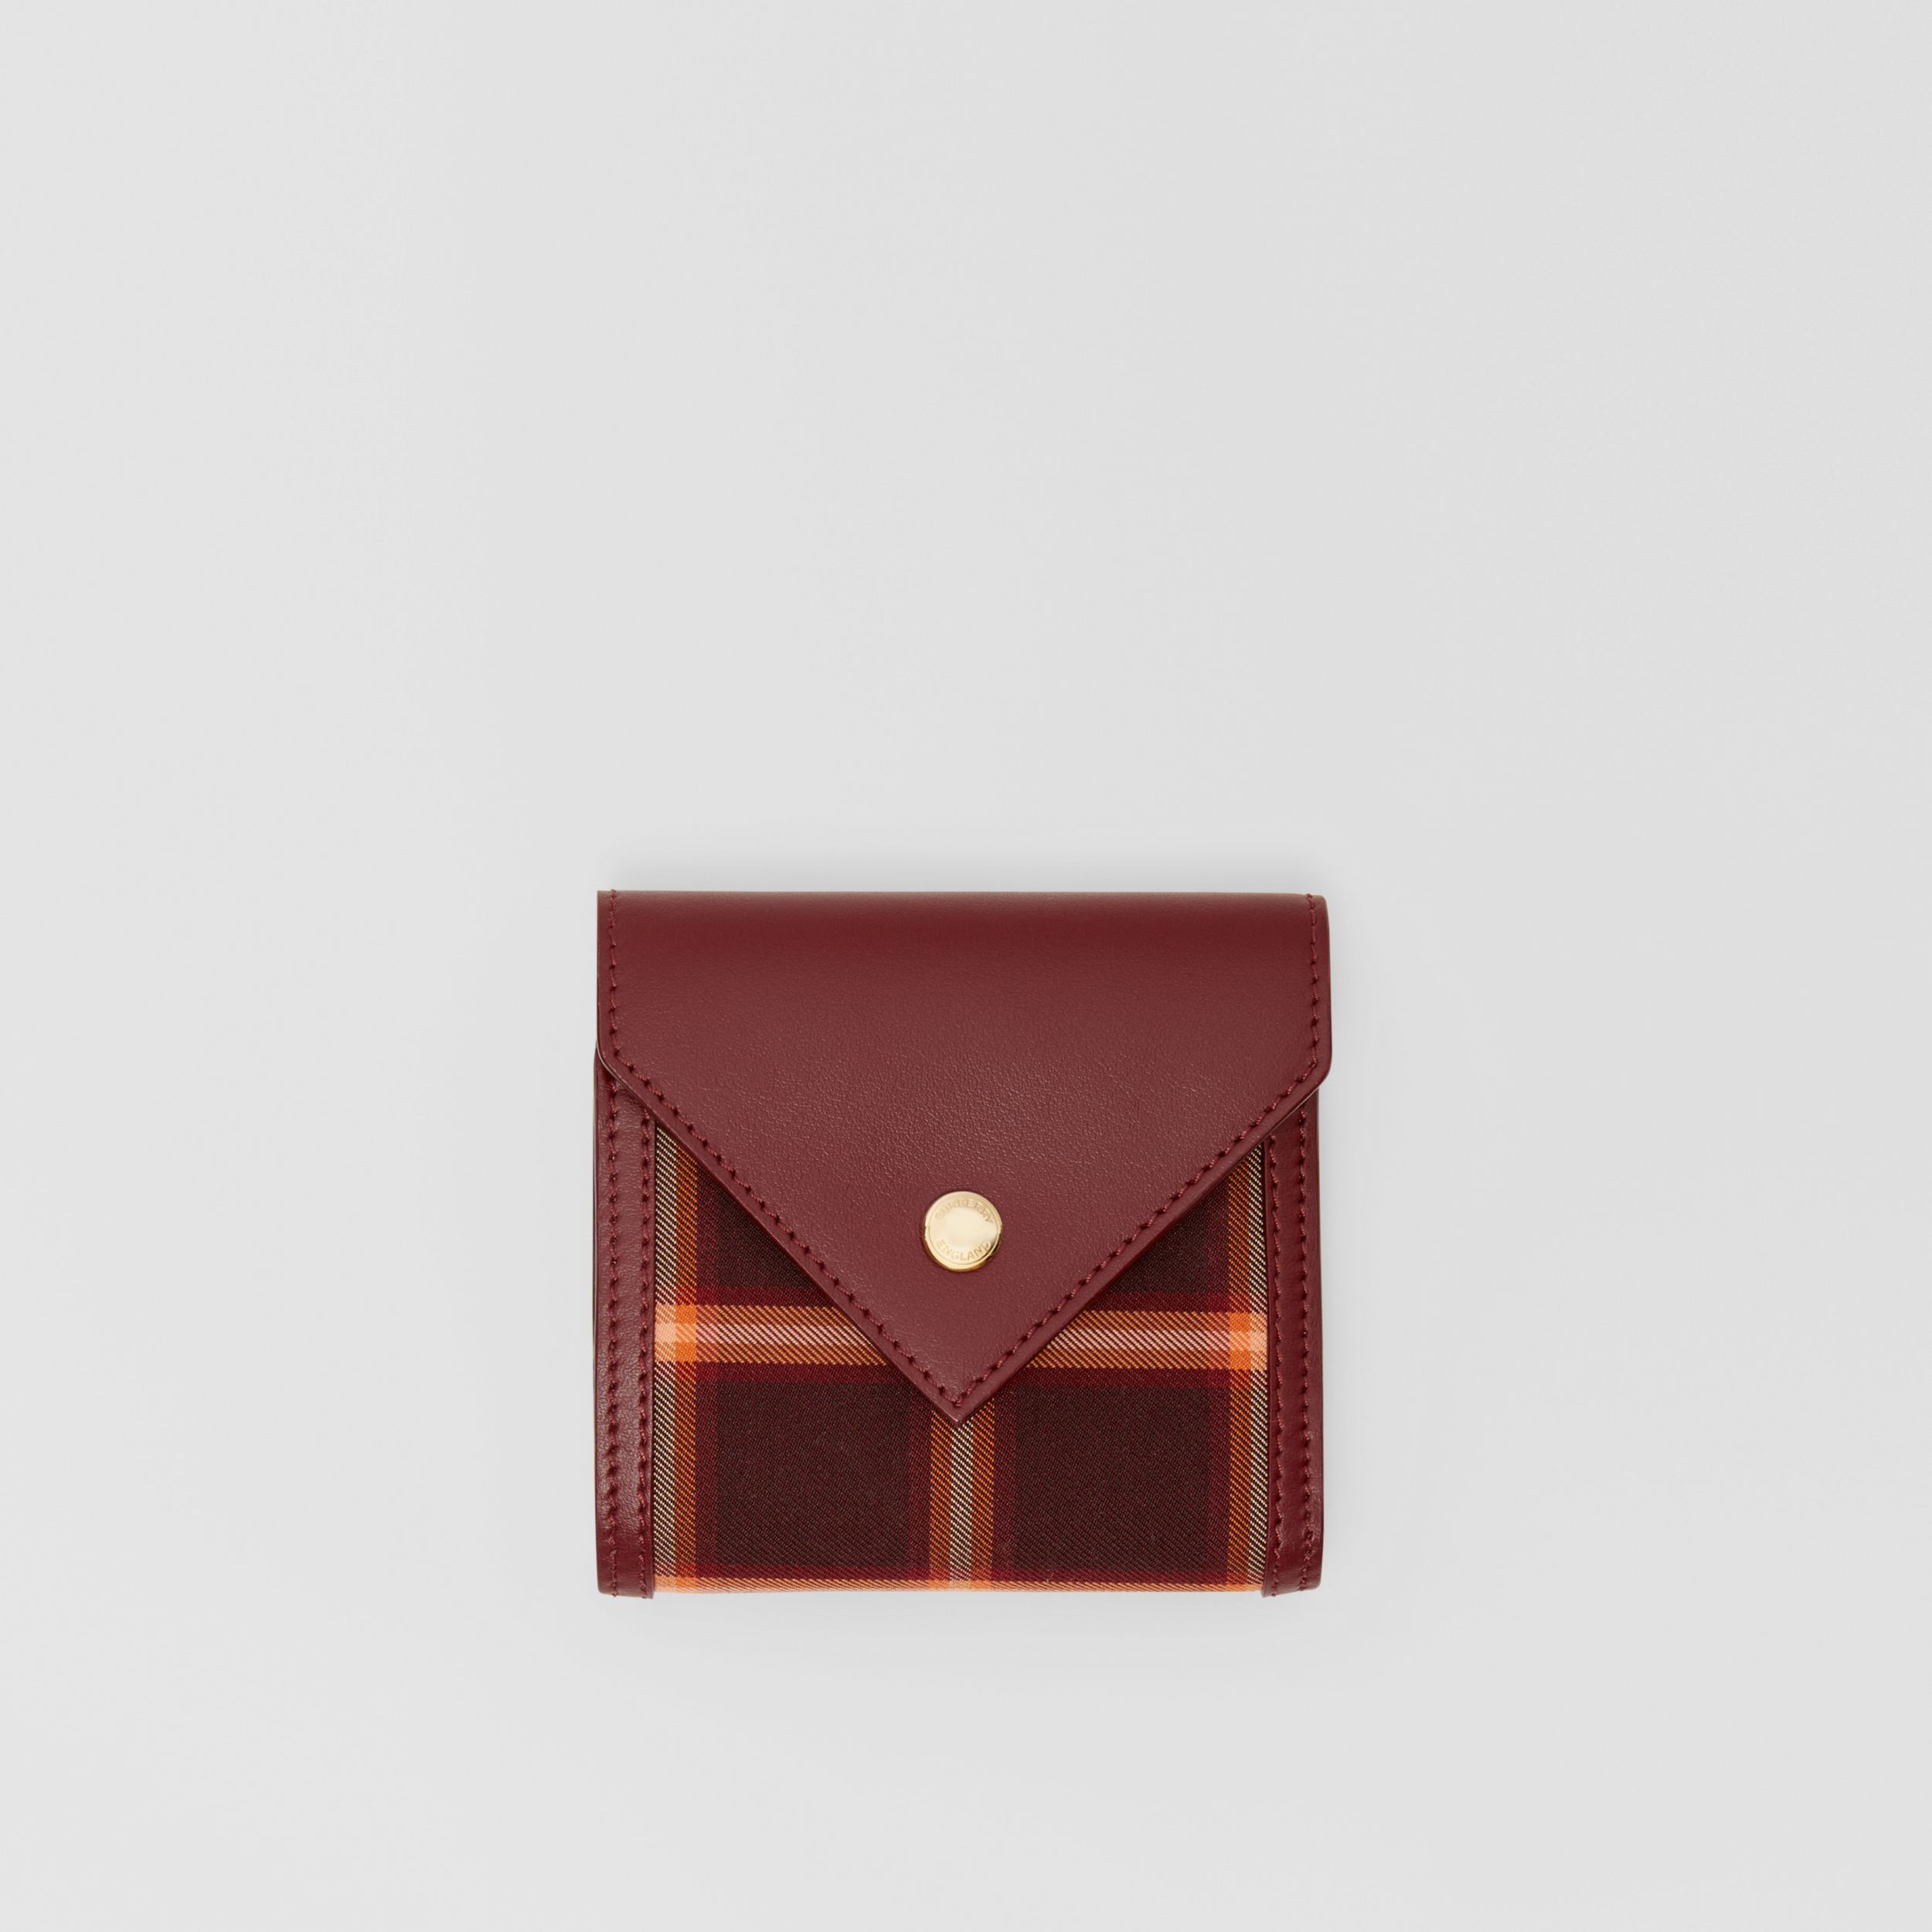 Tartan Technical Cotton and Leather Folding Wallet in Burgundy - Women | Burberry Australia - 1